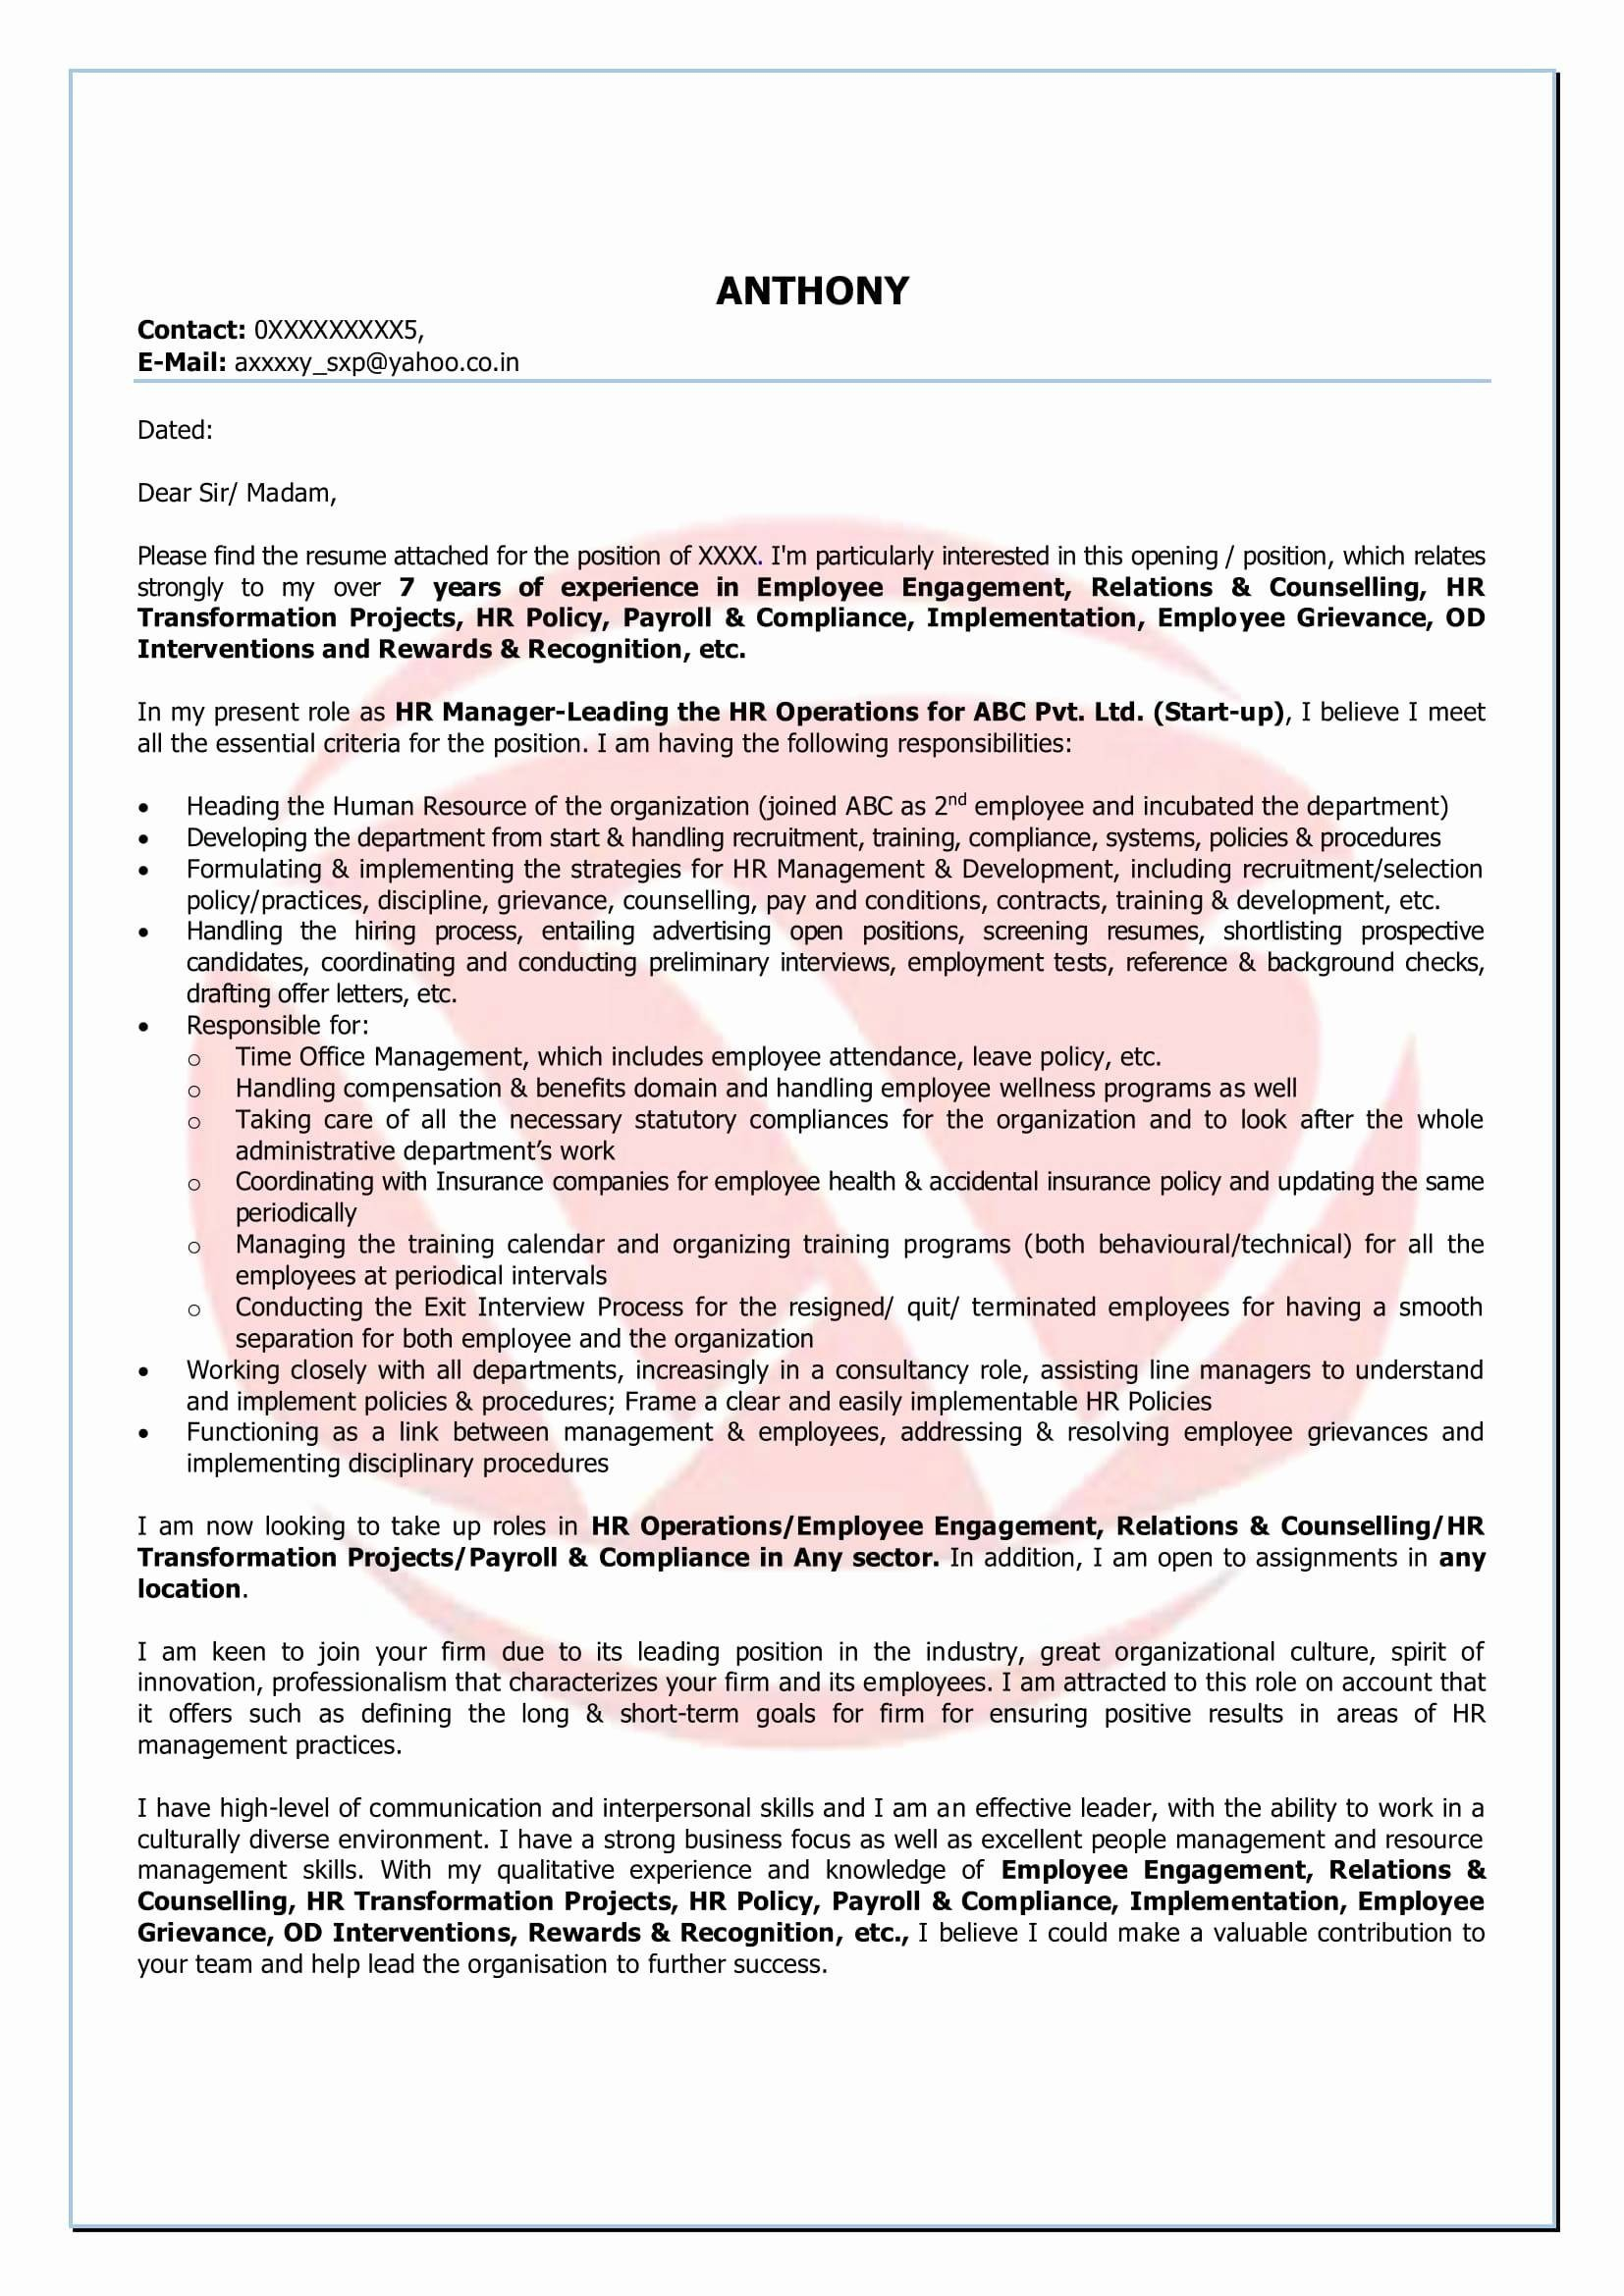 Gdpr Letter Template - Pliance Statement Template